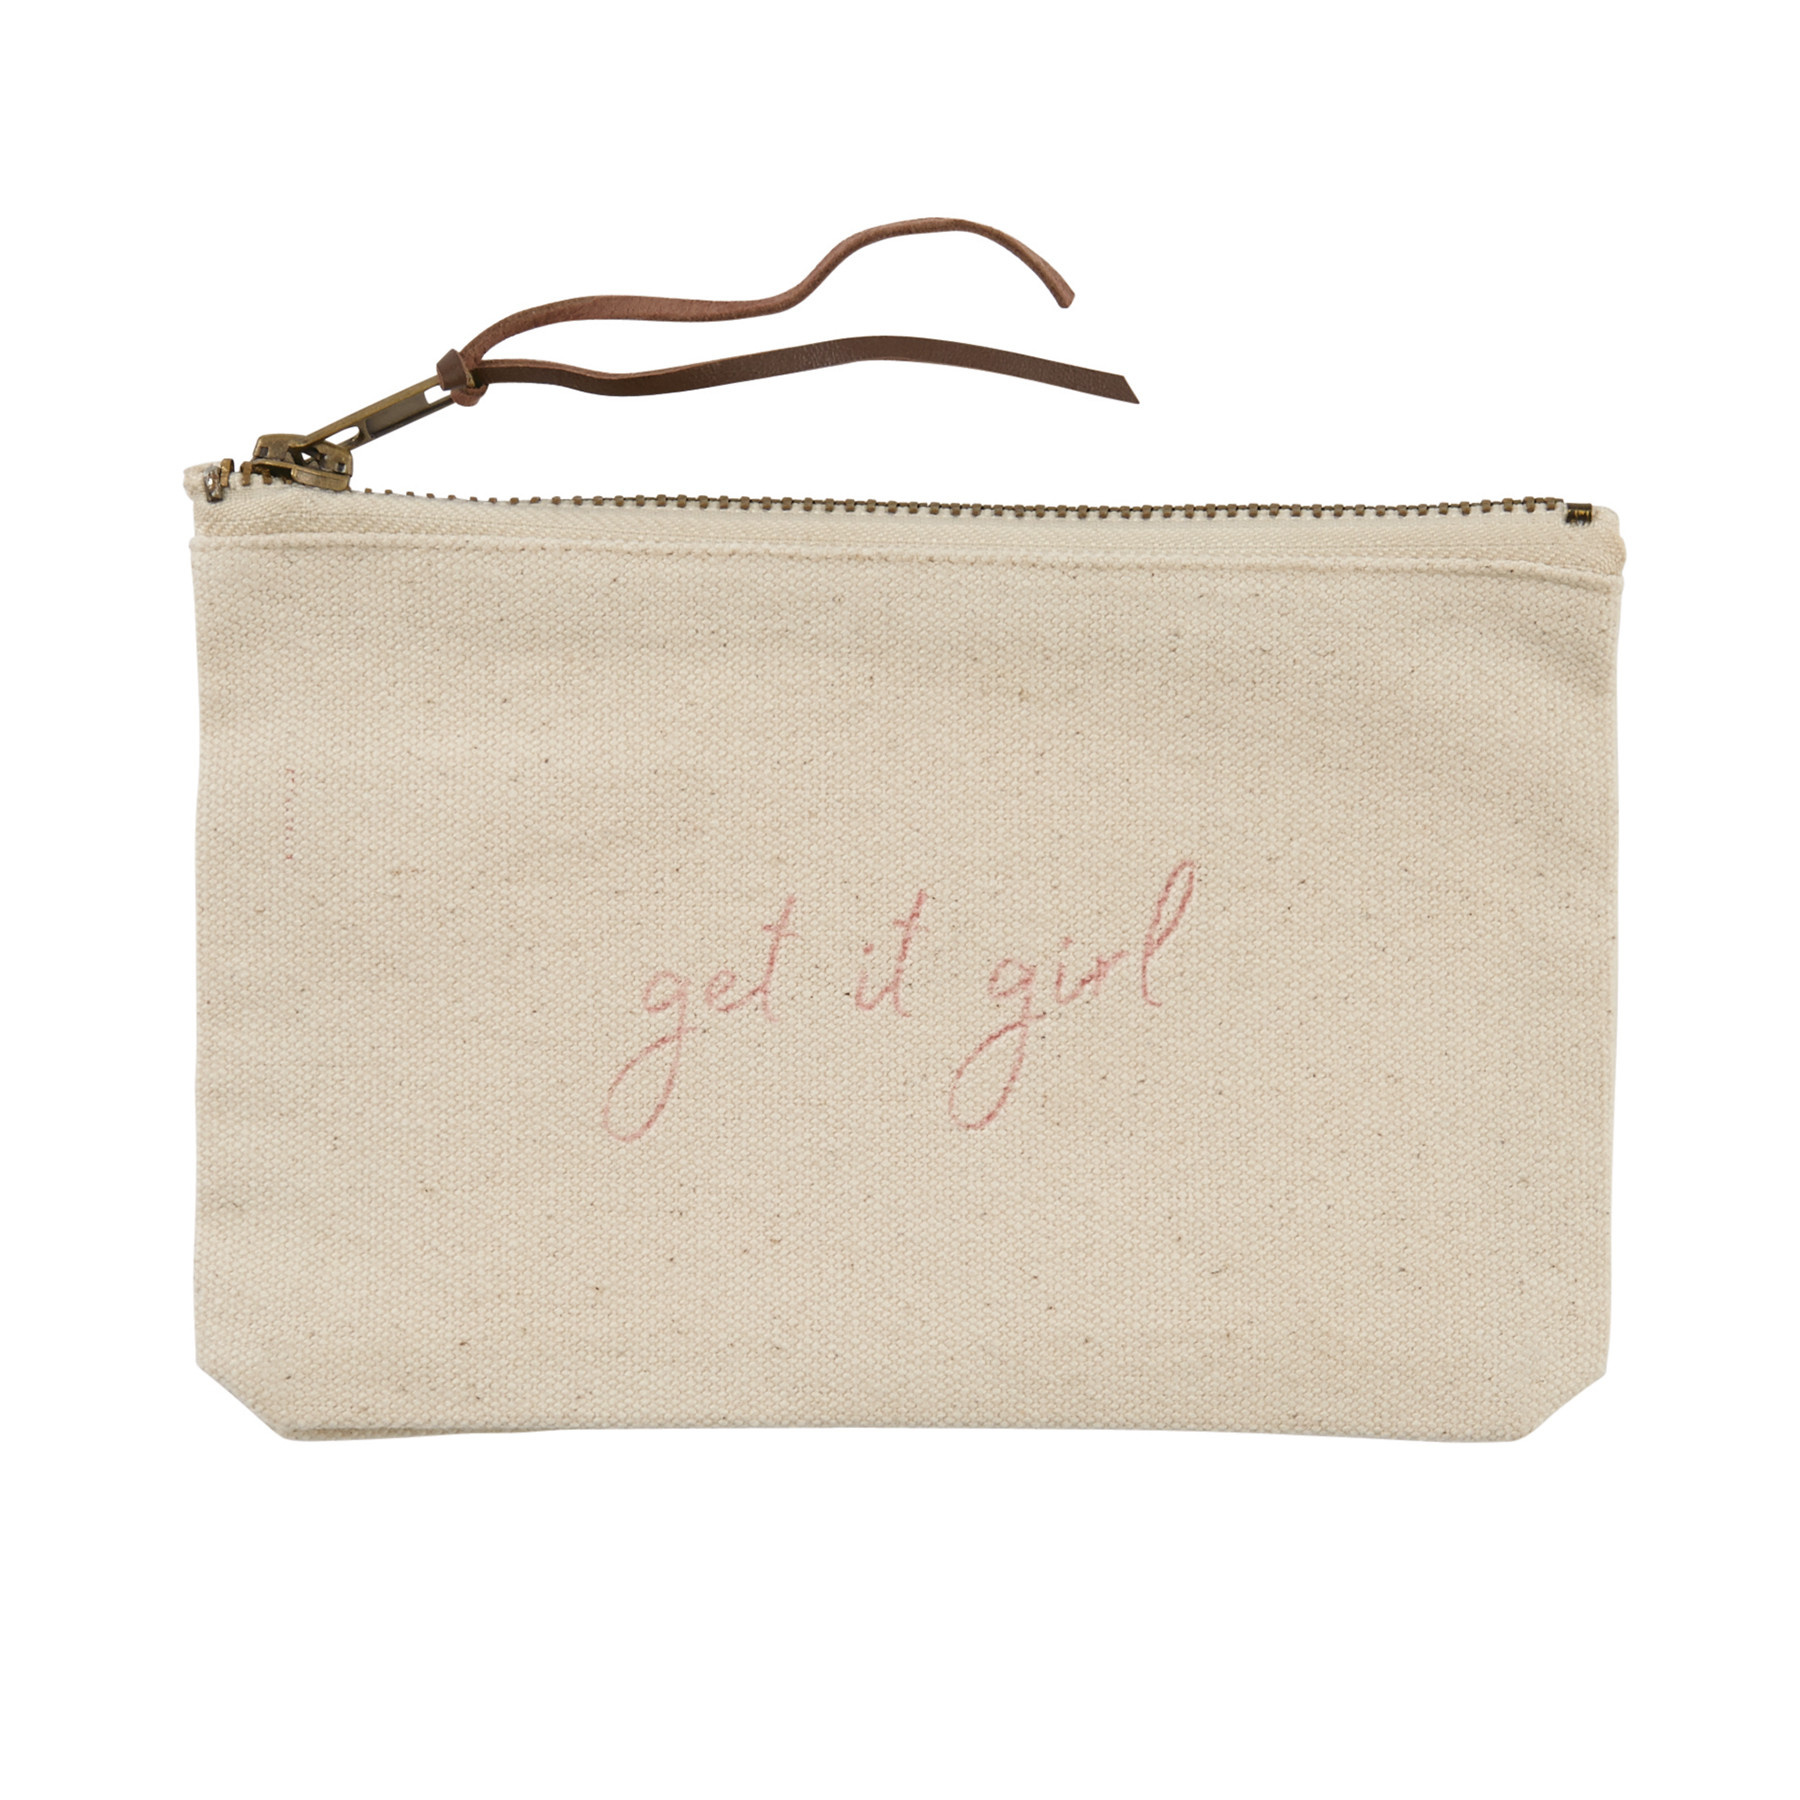 Mud Pie GET IT GIRL CANVAS POUCH